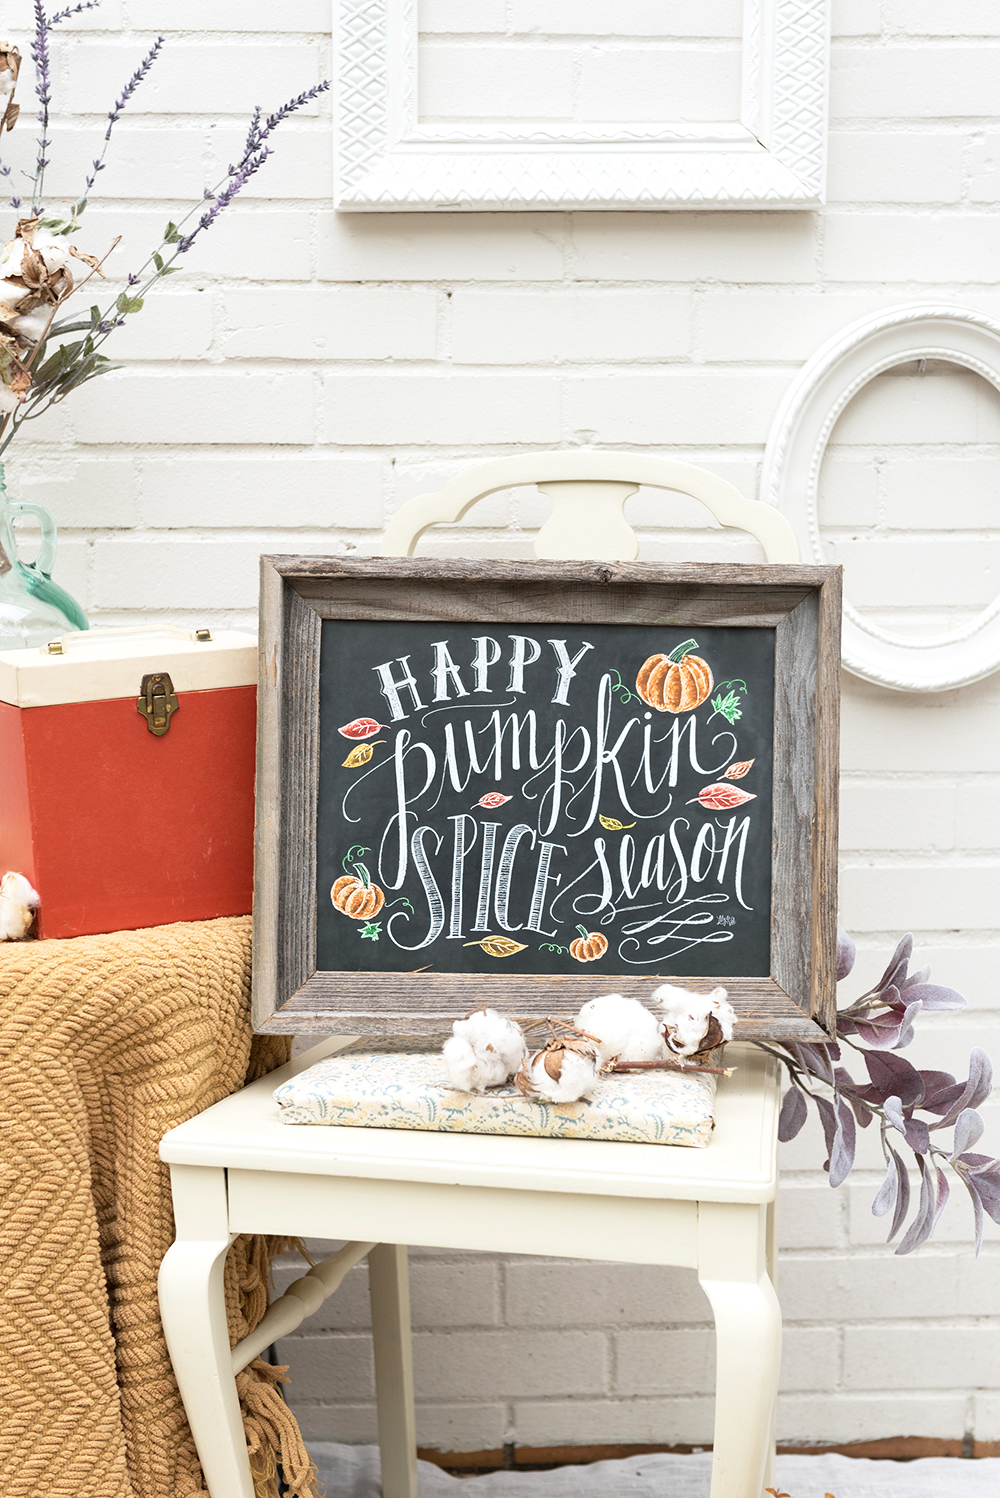 Happy Pumpkin Spice Season Fall Sign Decor